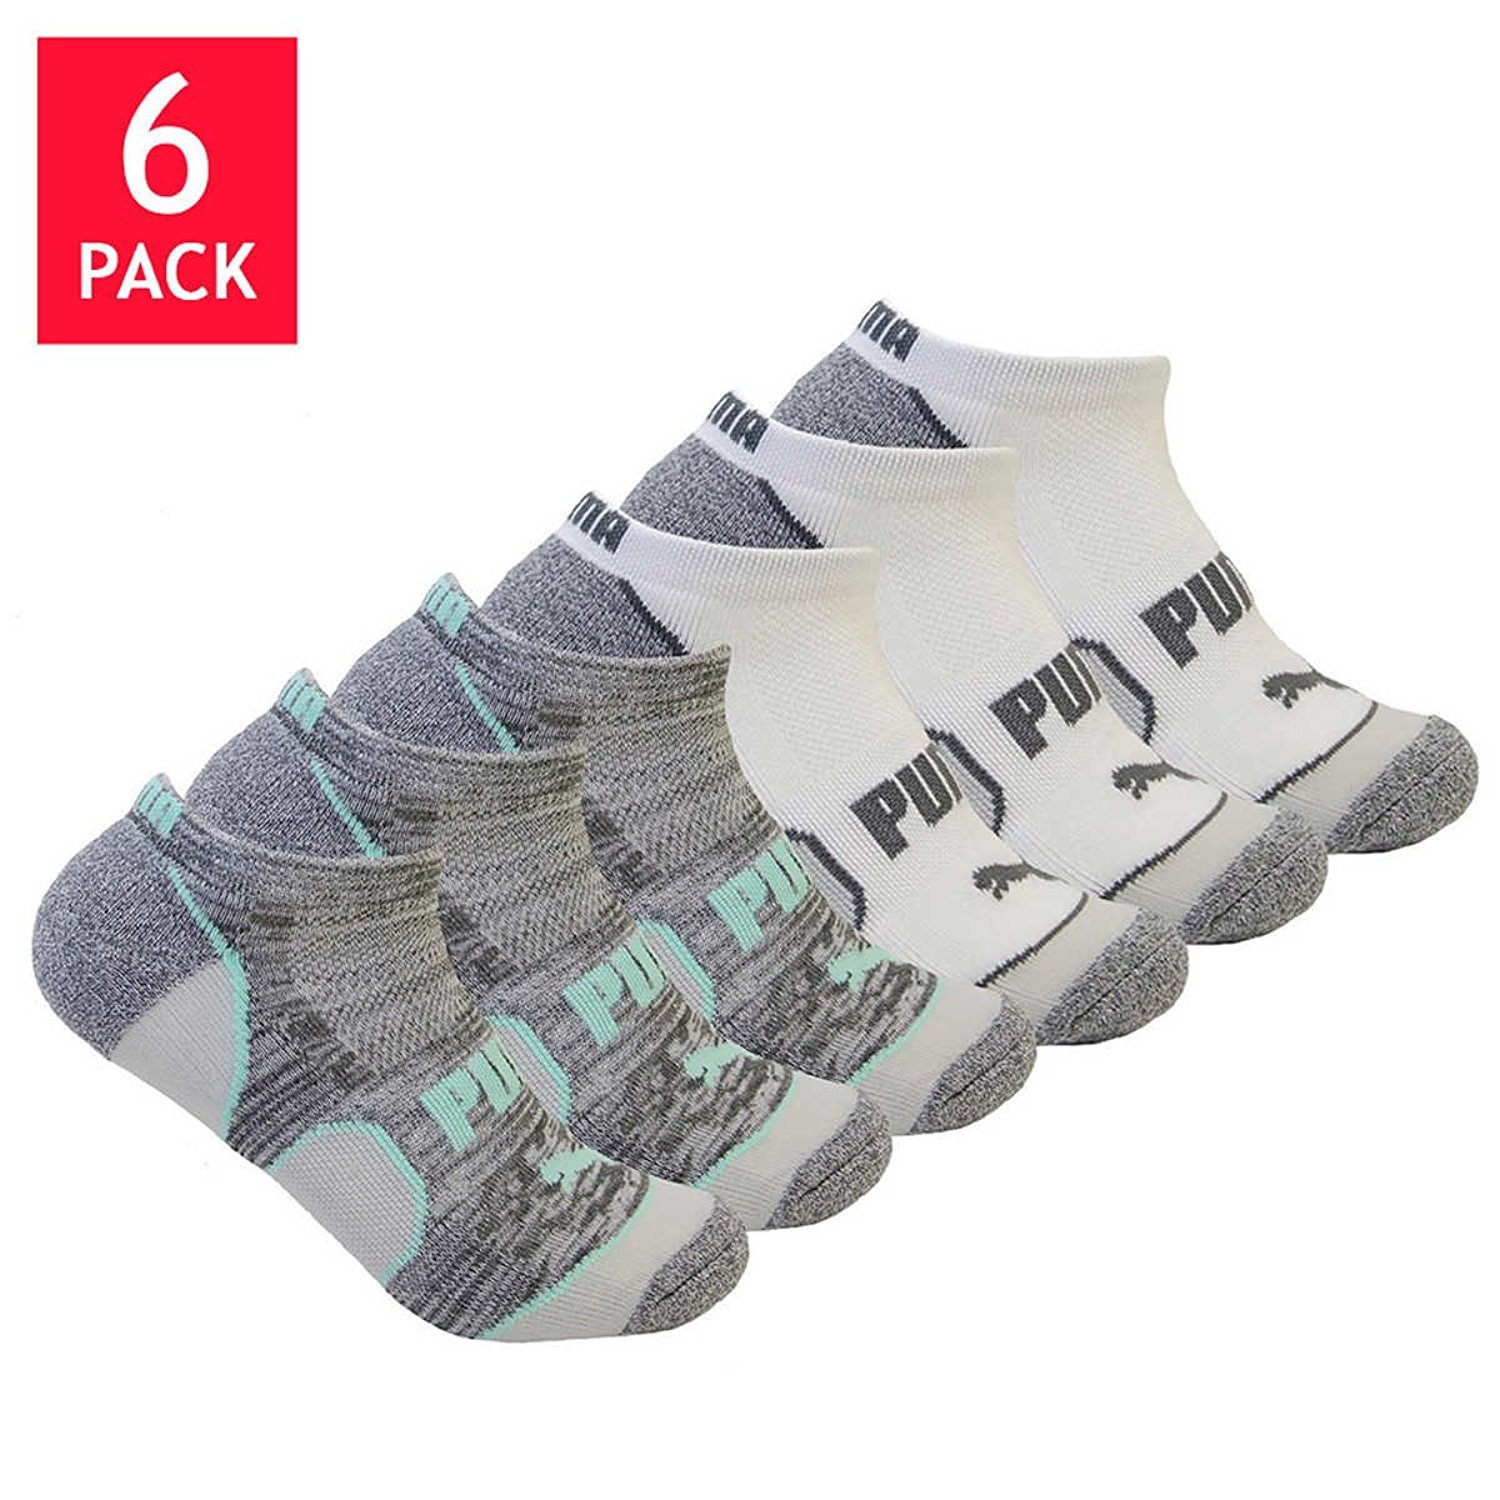 Puma Women's No Show All Sport Athletic Socks 6-Pair 00-1ZF4IJ-IT